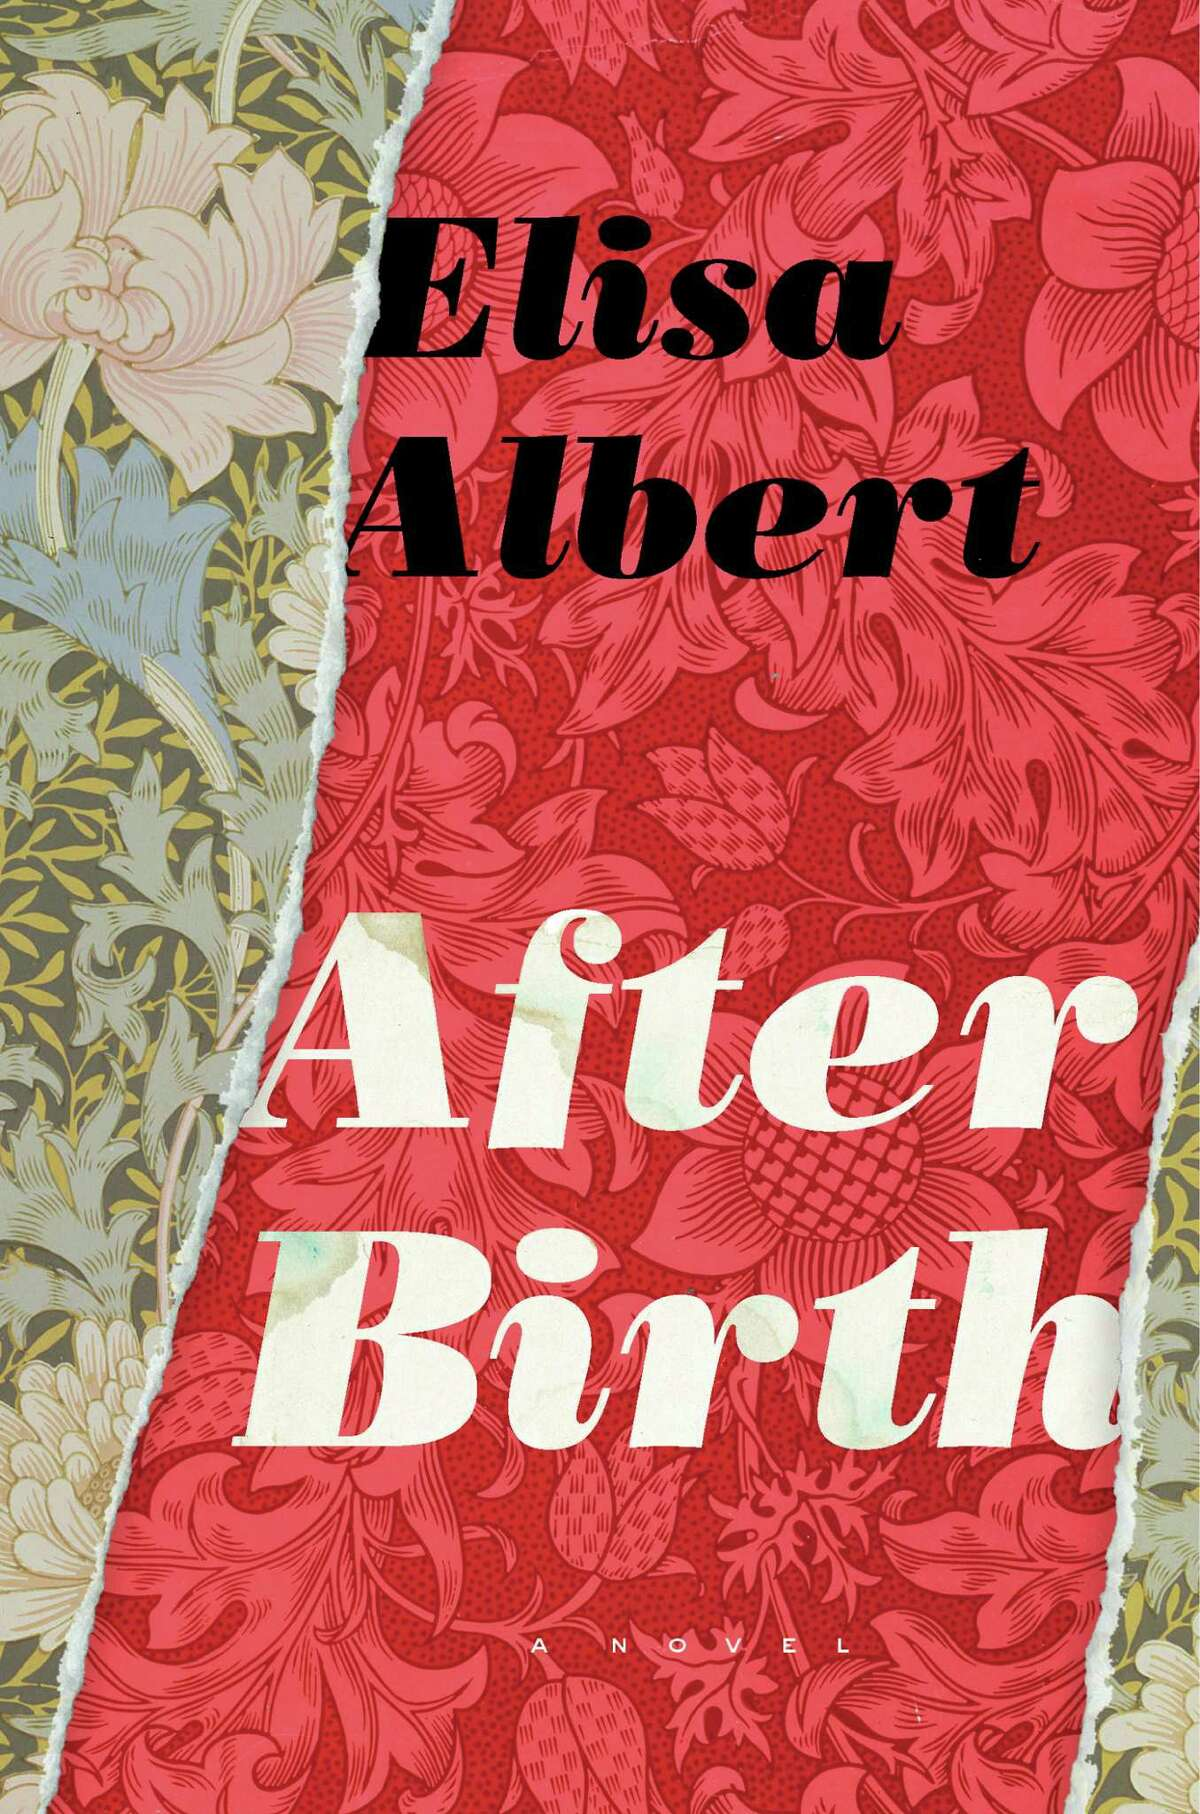 """New motherhood is not always the warm and fuzzy babymoon it's cracked up to be. It certainly isn't in Elisa Albert's new novel, """"After Birth"""" (Houghton Mifflin Harcourt, February 2015). Albert, an Albany resident and former visiting writer at The College of Saint Rose, will read from the novel at the University at Albany on Thursday, March 26, 2015, as part of the New York State Writers Institute program of visiting writers. (Courtesy of the author)"""